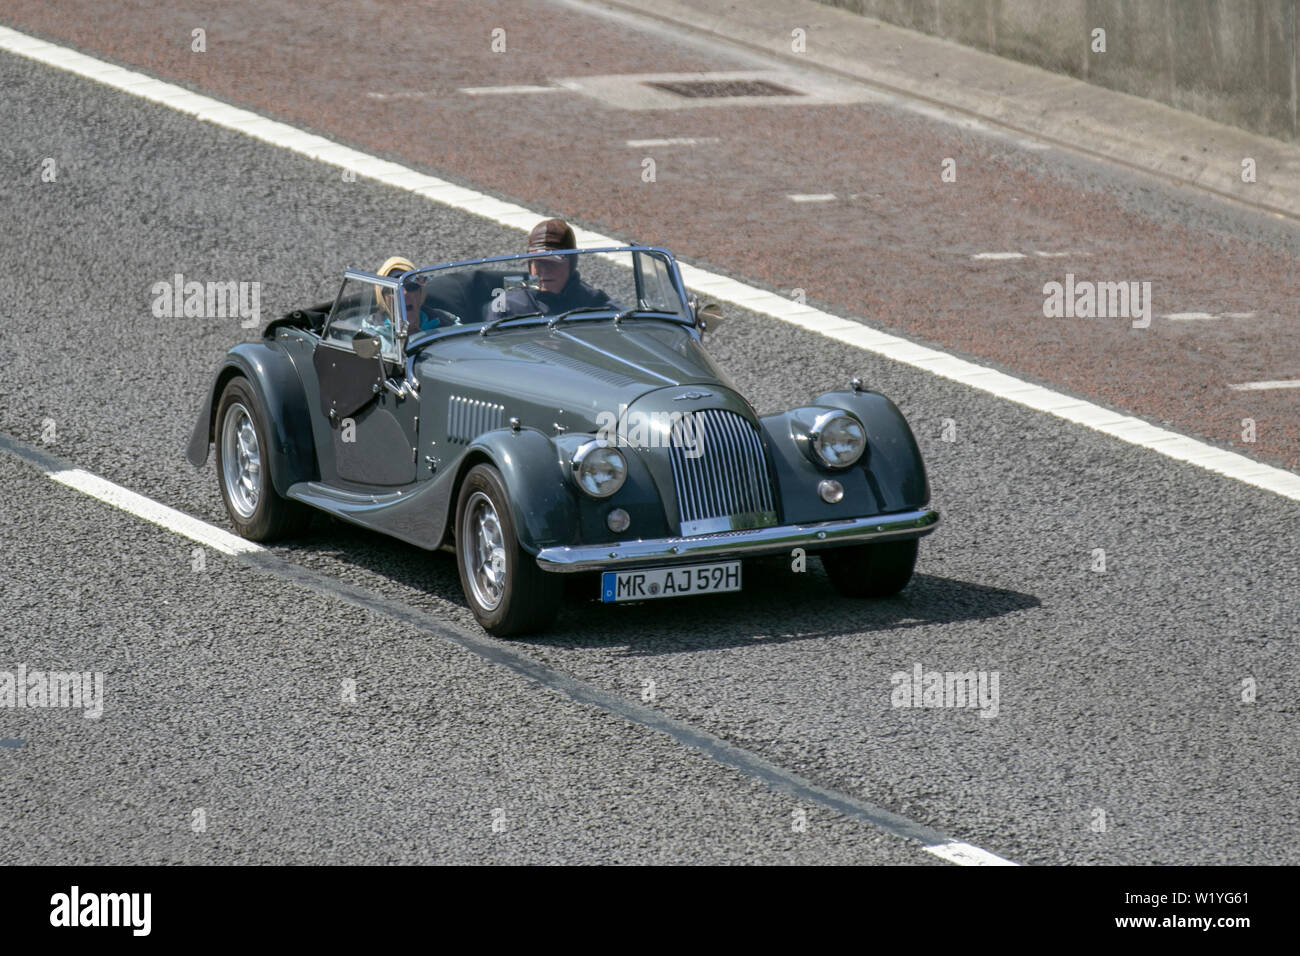 Vintage Grey Green Morgan Classic Two Seater Sports Car Uk Vehicular Traffic Transport Modern Saloon Cars North Bound On The 3 Lane M6 Motorway Highway Stock Photo Alamy